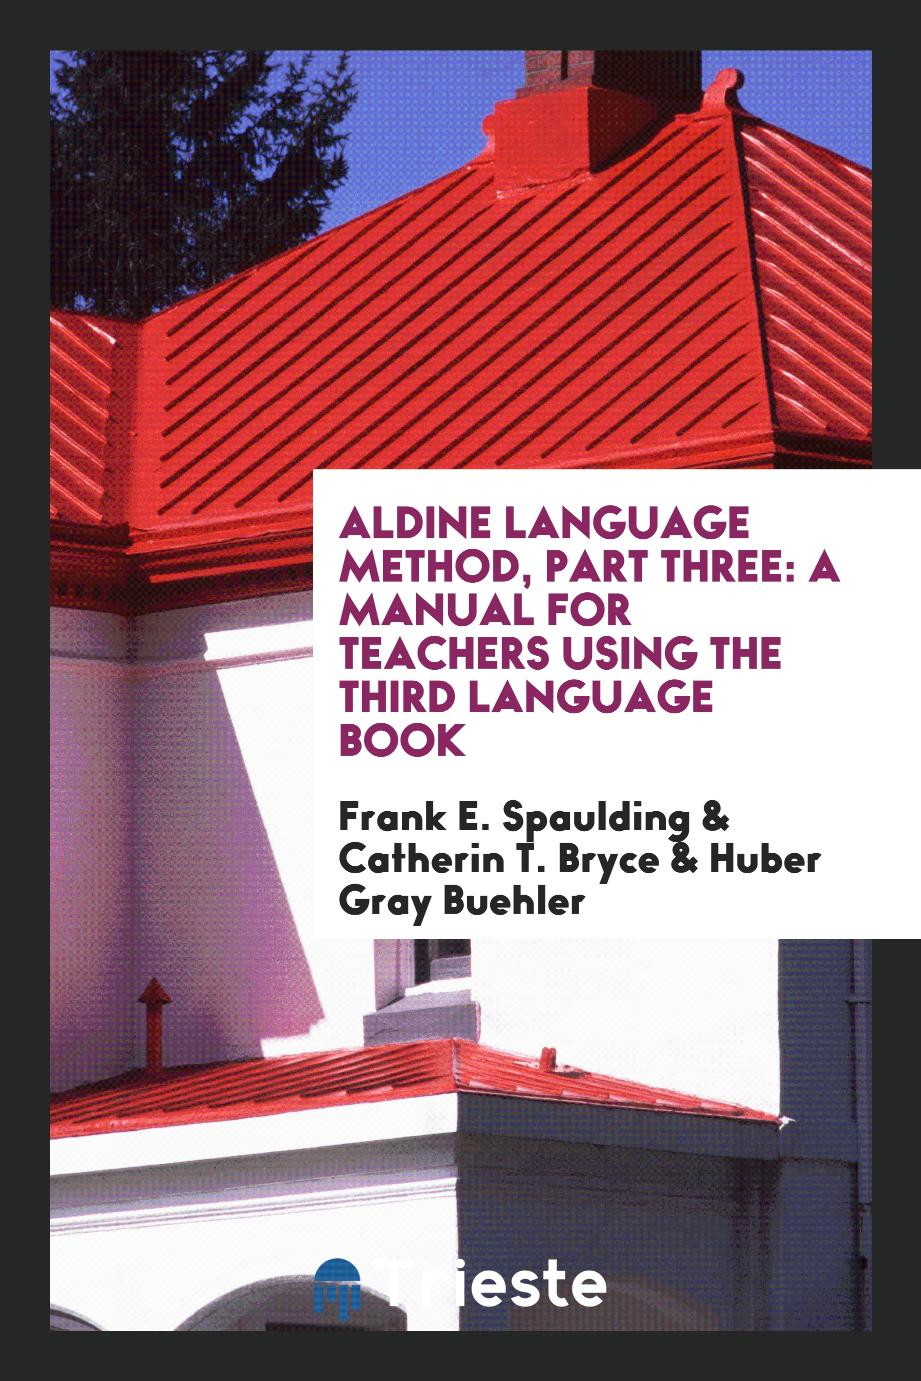 Aldine Language Method, Part Three: A Manual for Teachers Using the Third Language Book